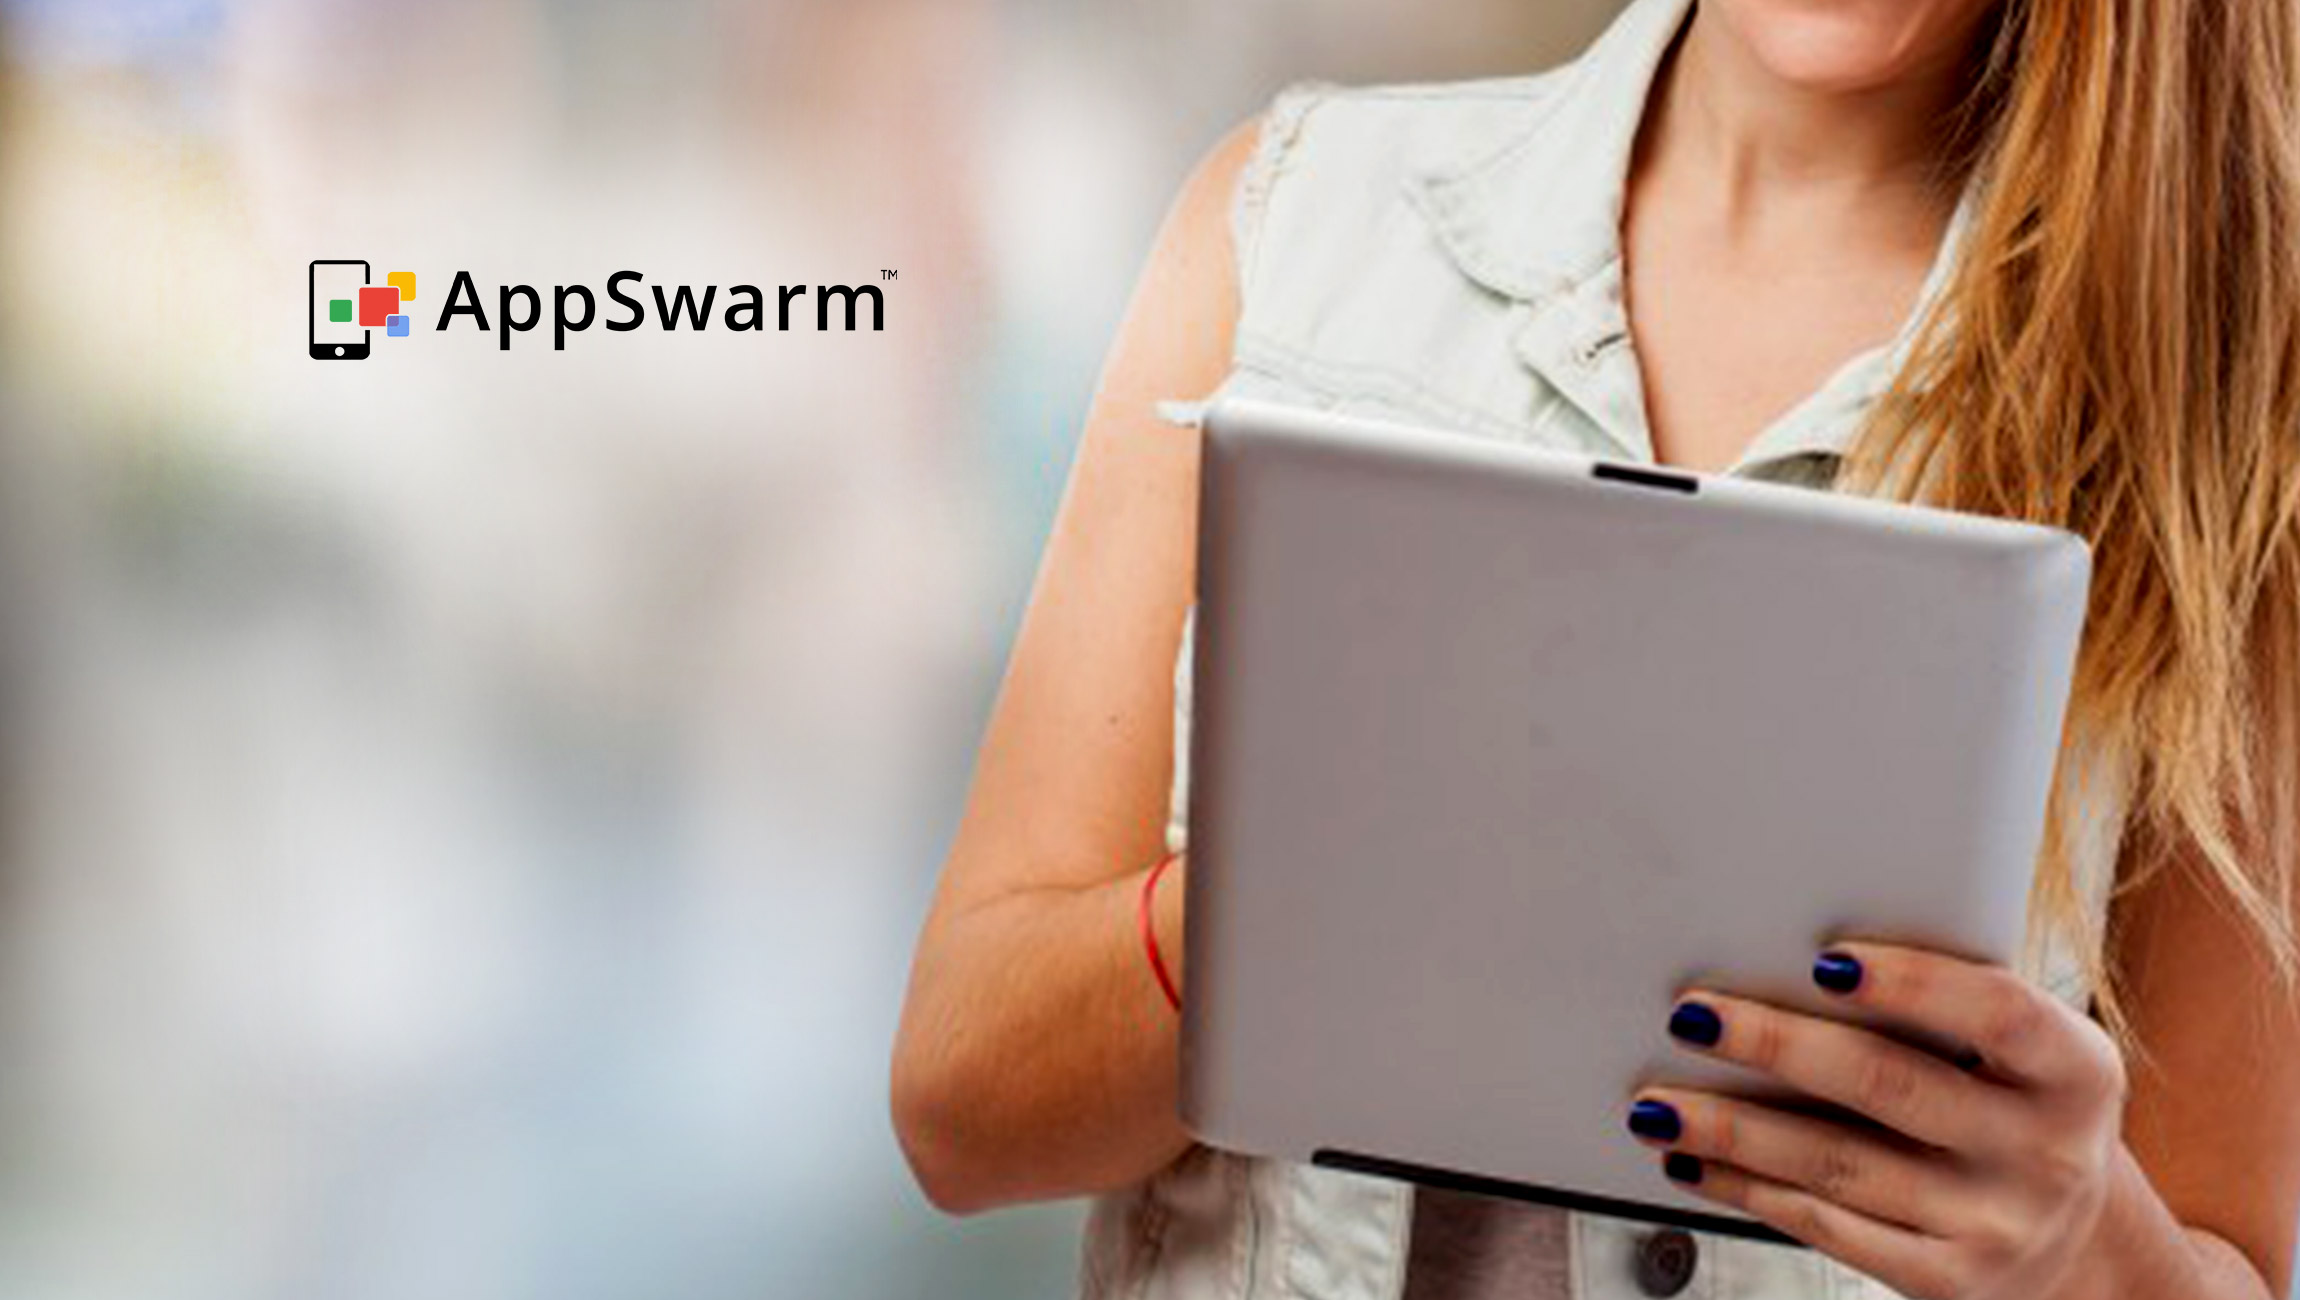 AppSwarm and Deep Sky Mobile Launching VoIP Communication Service for Businesses and Residential Customers